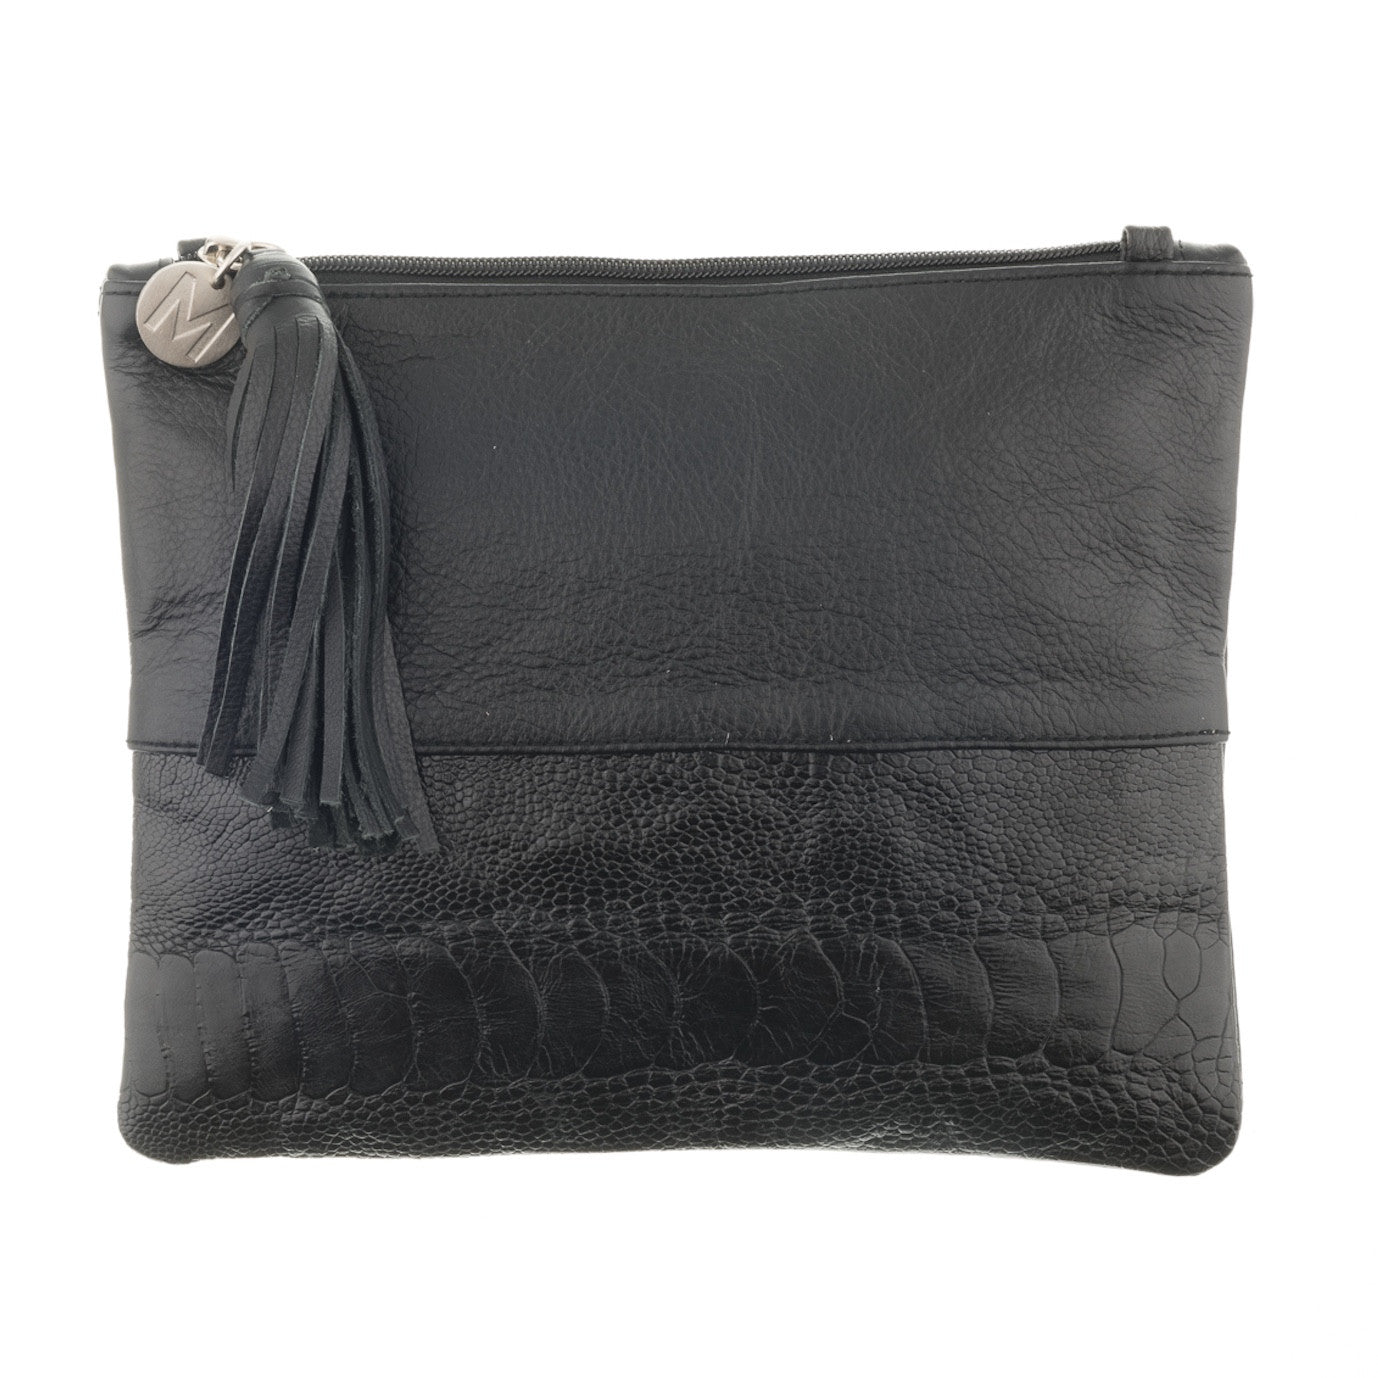 Natalie Black Leather and Shin Panel Clutch Bag